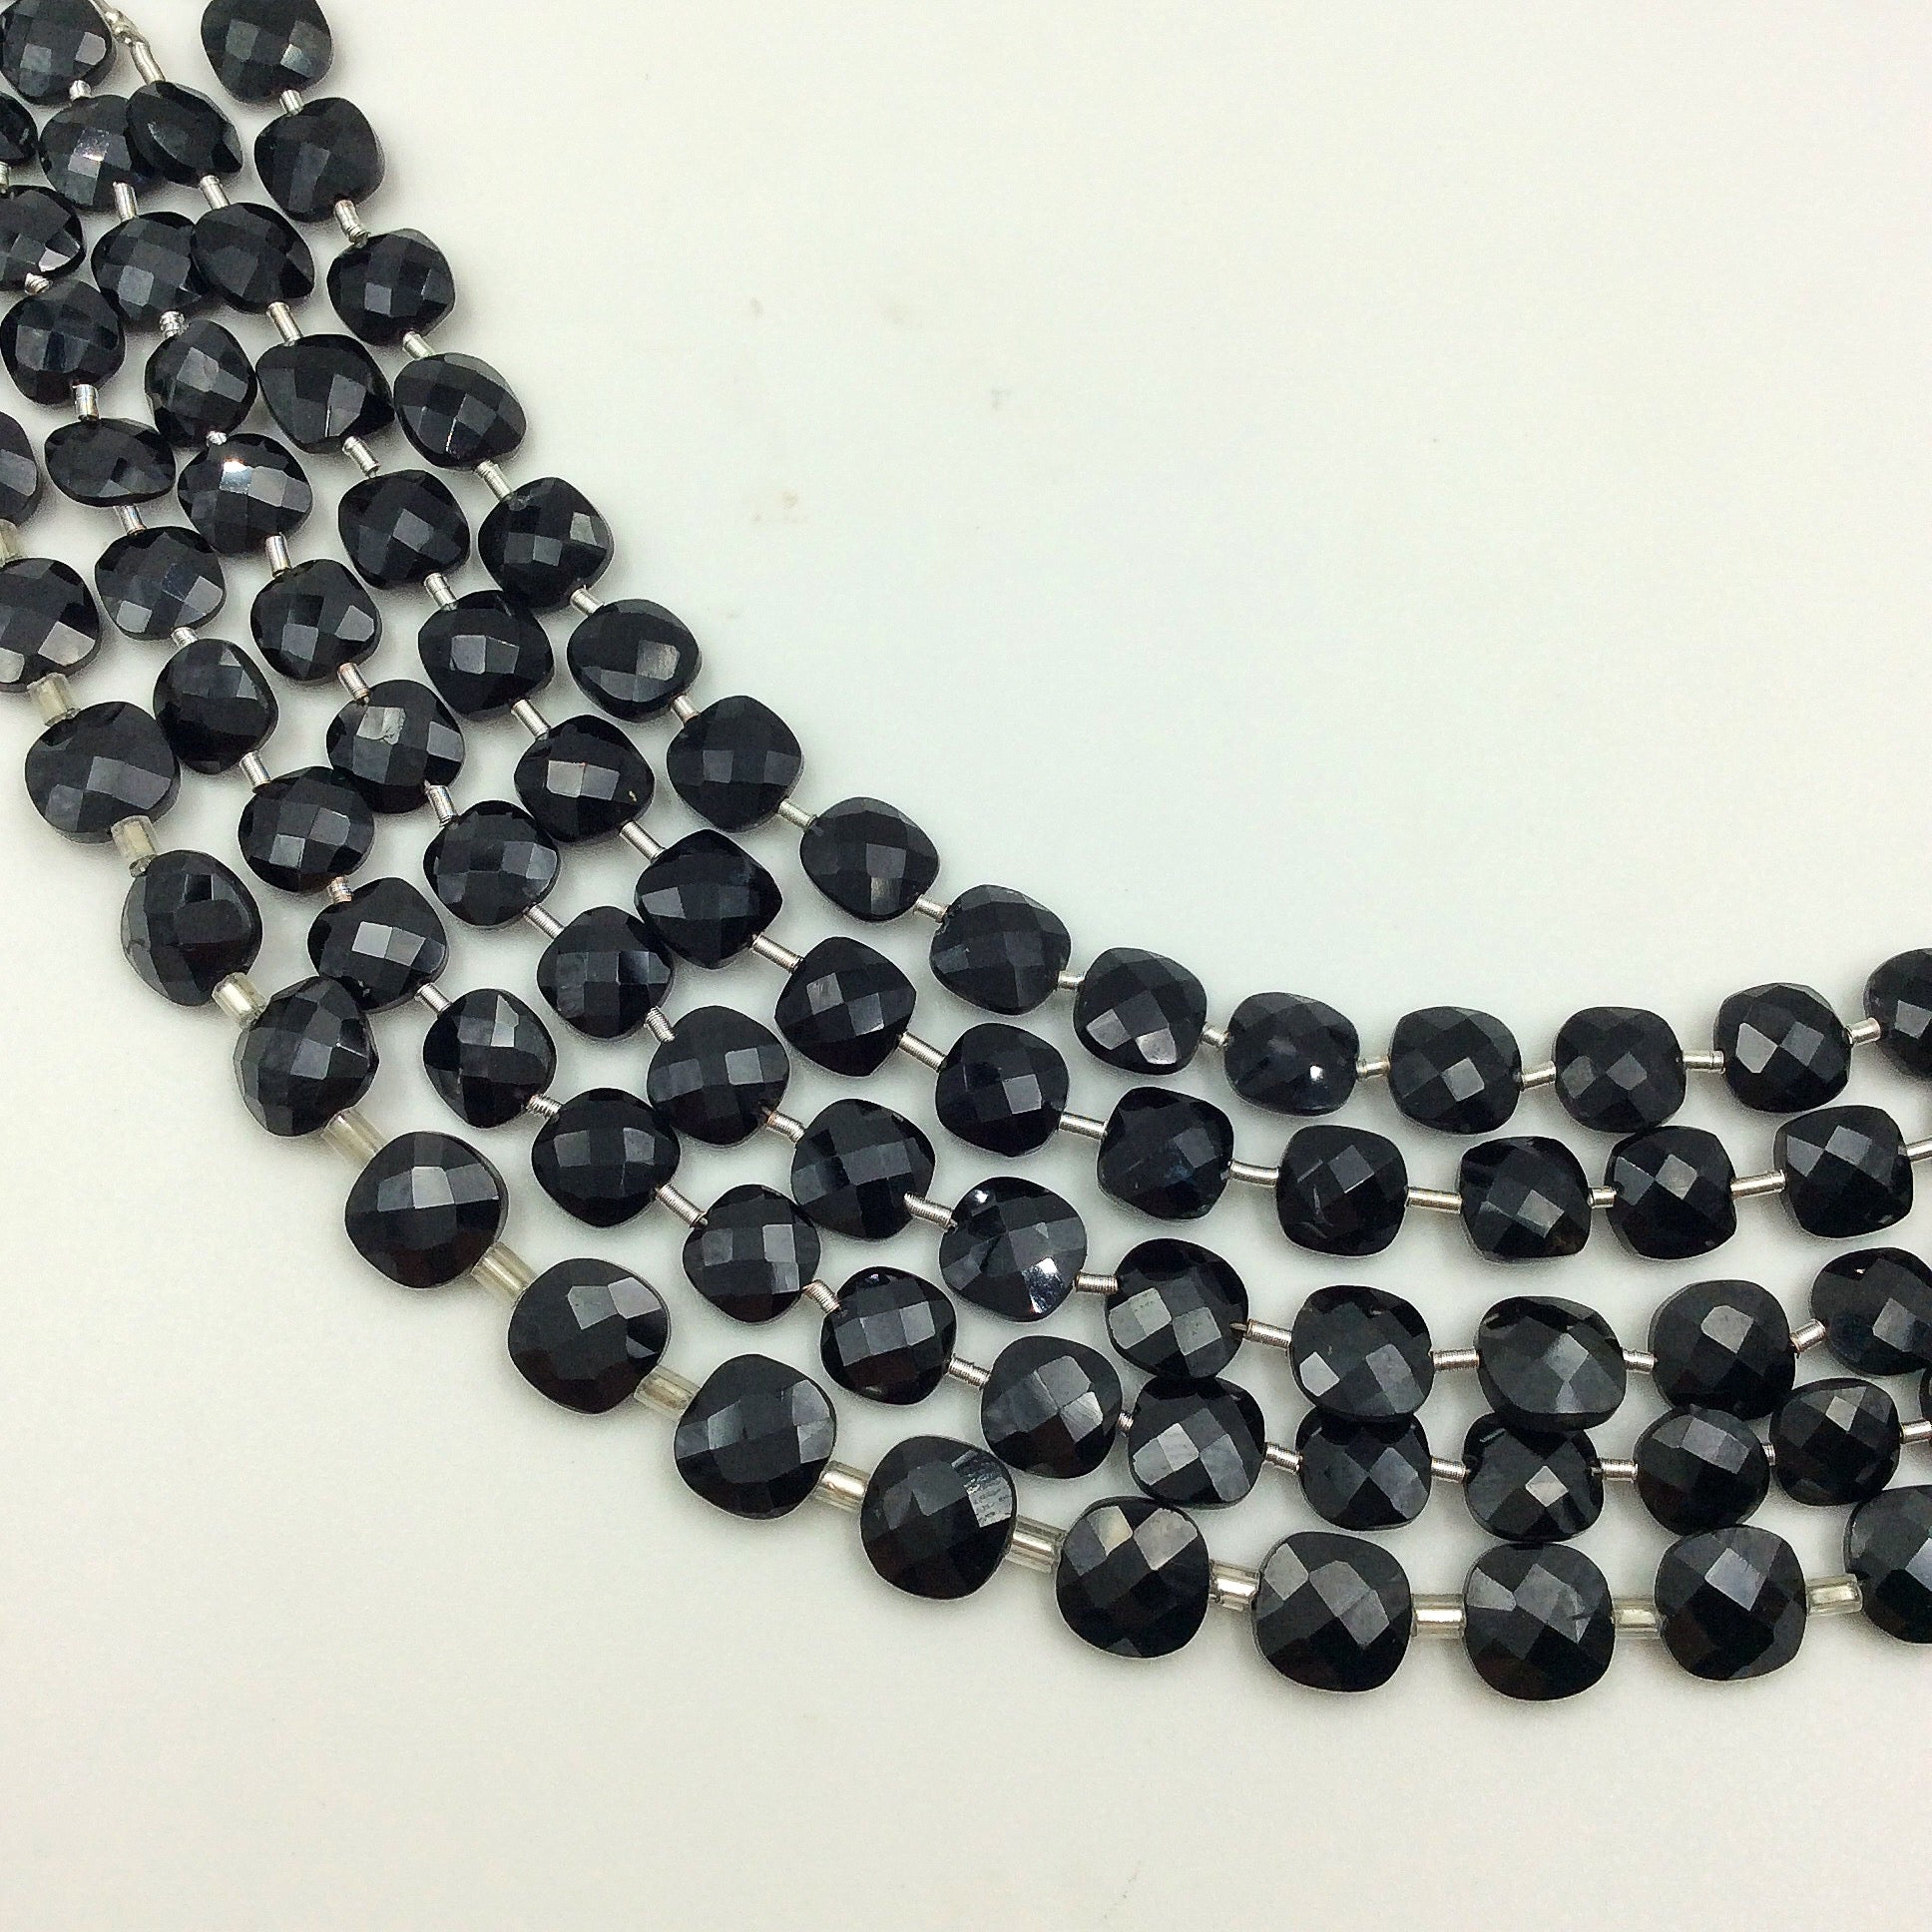 Black Onyx Faceted Checker Beads (MULTIPLE SIZES)